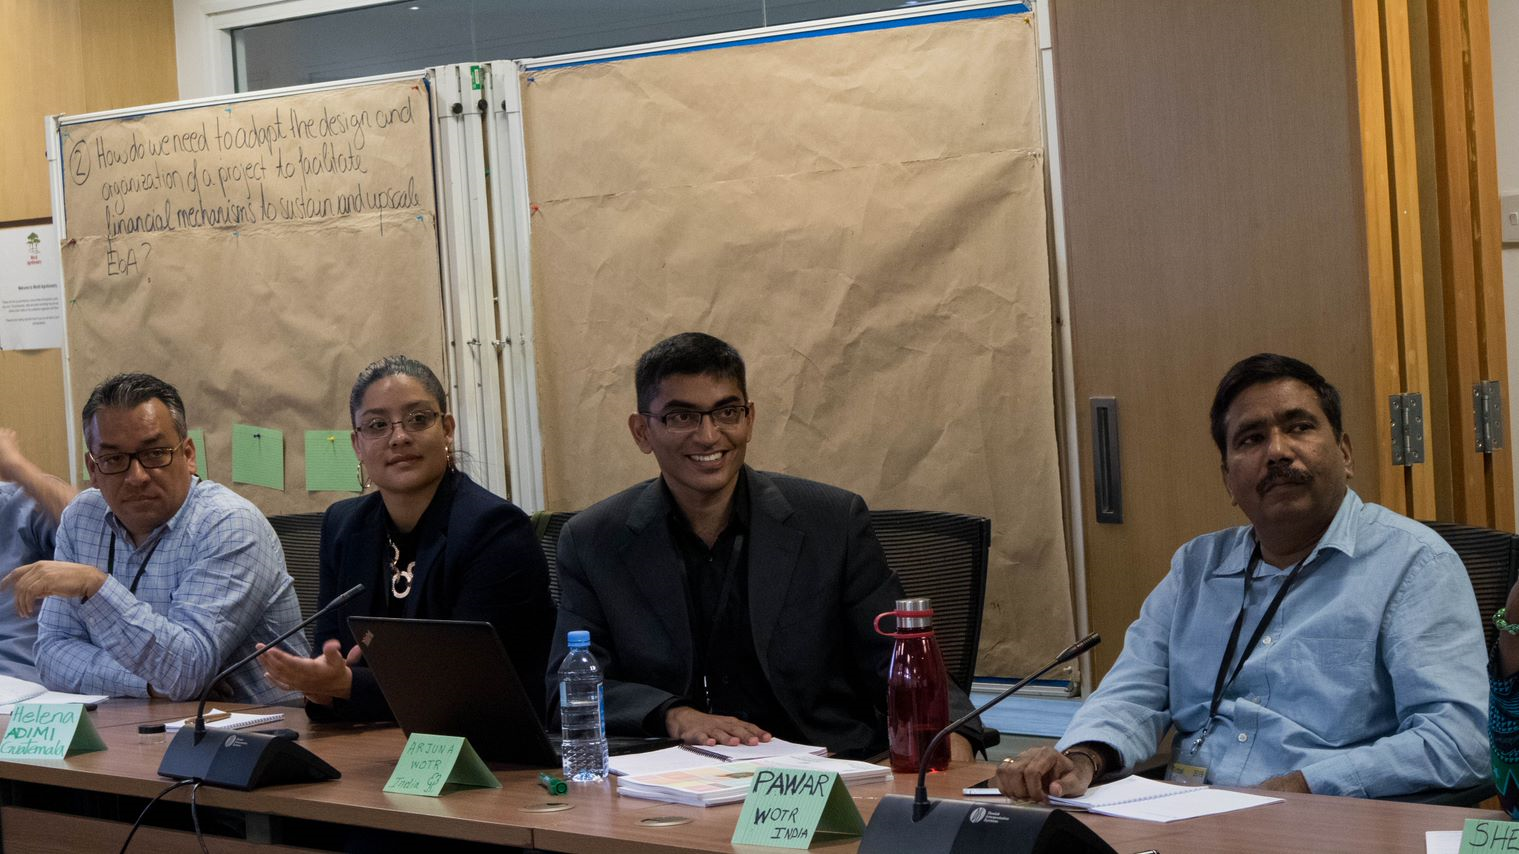 Plenary discussion with all participants on current challenges in EbA mainstreaming (pictured from left to right: Magner Adolfo Estrada Barrera (Ministry of Environment, Guatemala); Helena Dávila Esquivel (ADIMI), Arjuna Srinidhi (WOTR); Photo: Bruno St-Jacques / TMG Research